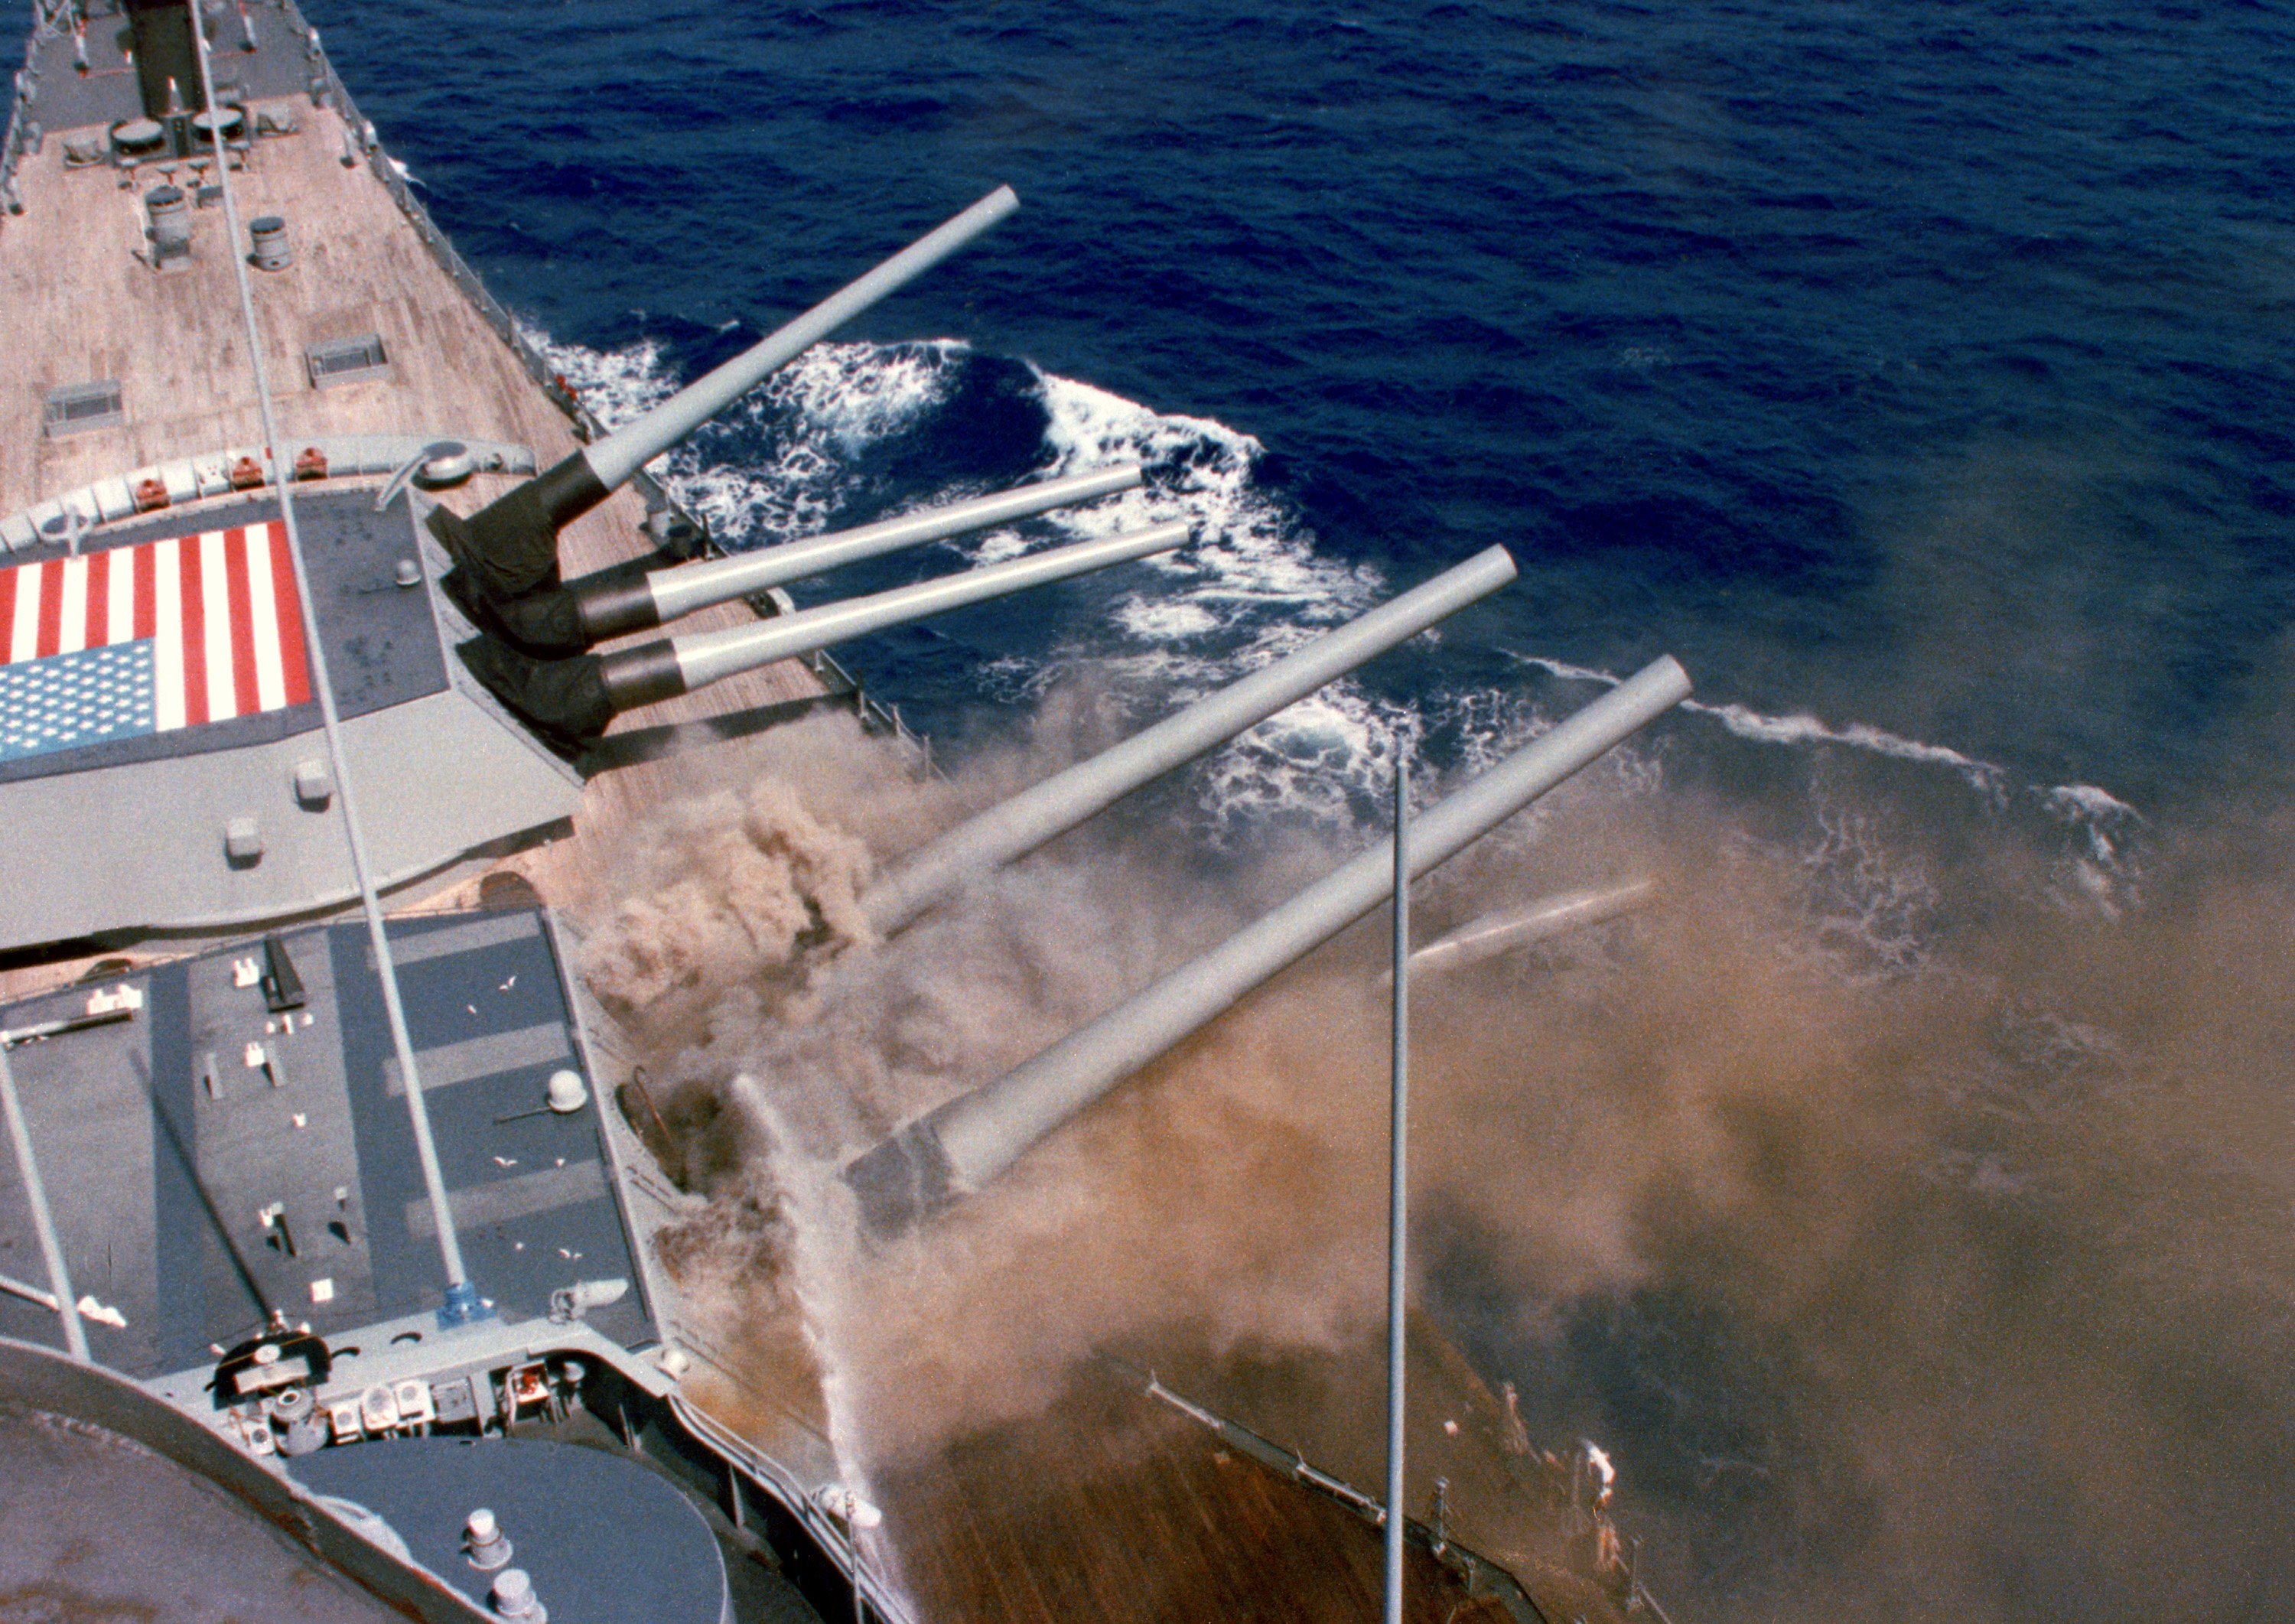 The damaged Number Two turret smokes while being cooled with seawater shortly after the 1989 explosion.